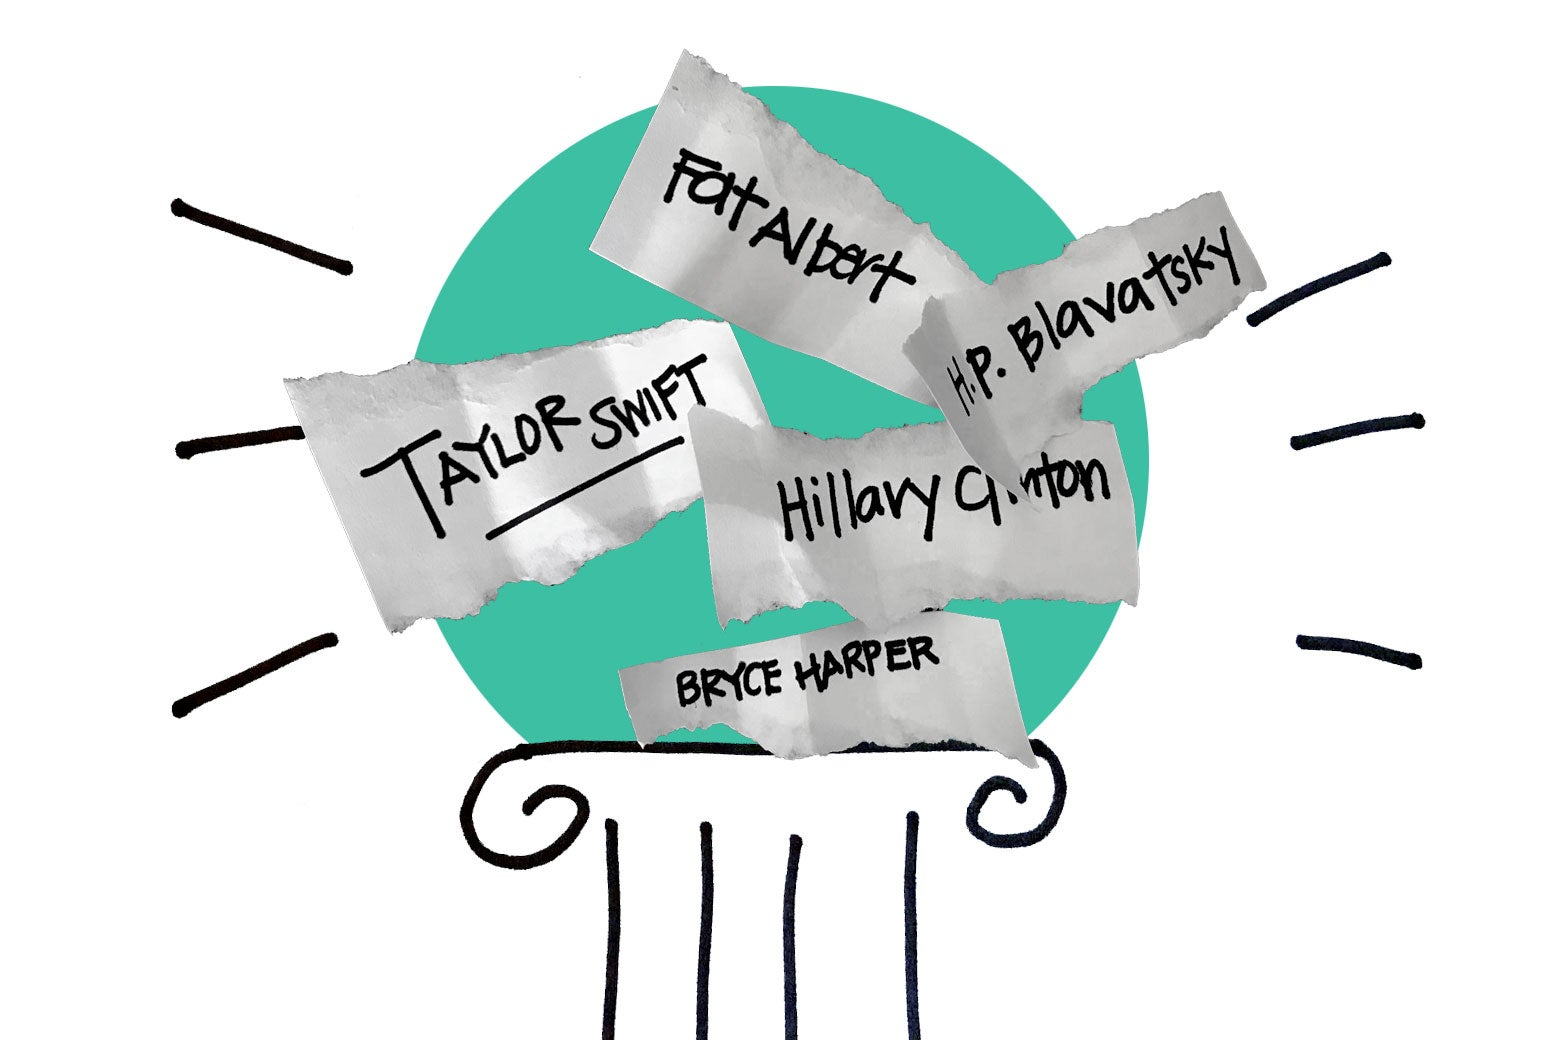 Scraps of paper with the names Taylor Swift, Hillary Clinton, Fat Albert, H.P. Blavatsky, and Bryce Harper on a pedestal.